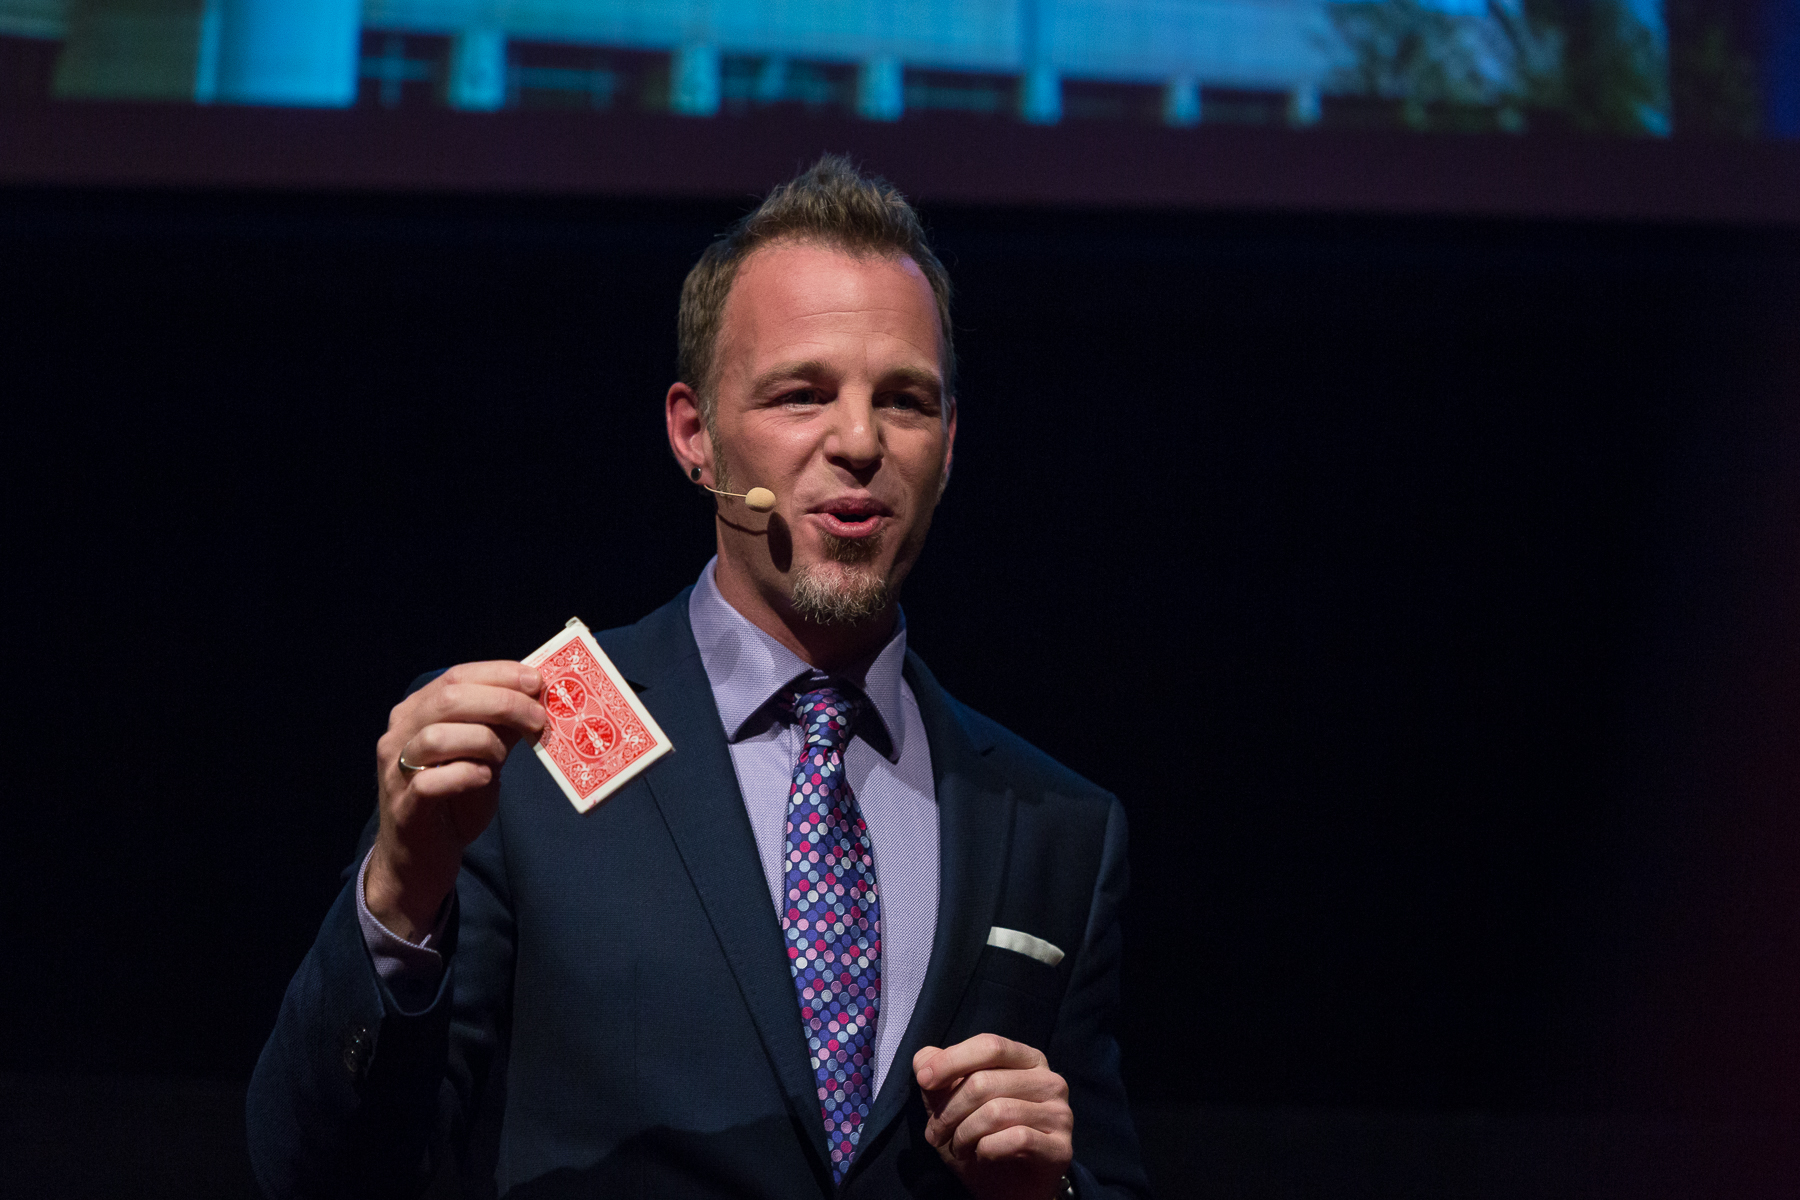 """"""" Hi, I'm Adam. - You may have seen me fool Penn & Teller on their hit show Fool Us. Let me bring that same passion, professionalism and performance to your event!My goal is to make you look like a rockstar to your co-workers, friends and family. Let's Do this!"""""""